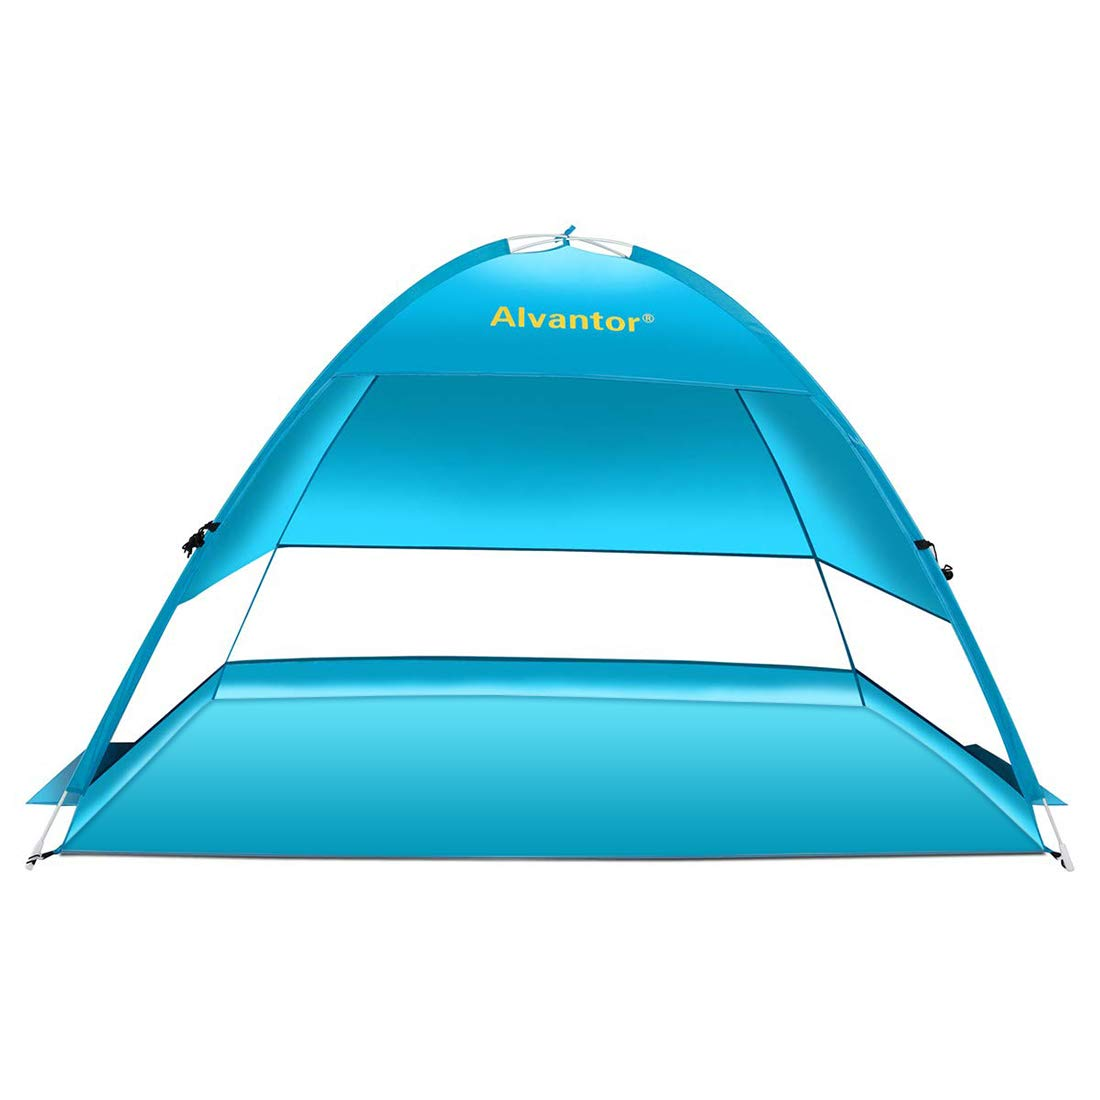 Alvantor Beach Tent Coolhut Plus Beach Umbrella Outdoor Sun Shelter Cabana Automatic Instant Pop-Up UPF 50+ Sun Shade Portable Camping Fishing Hiking Canopy Easy Set Up Light Weight Windproof by Alvantor